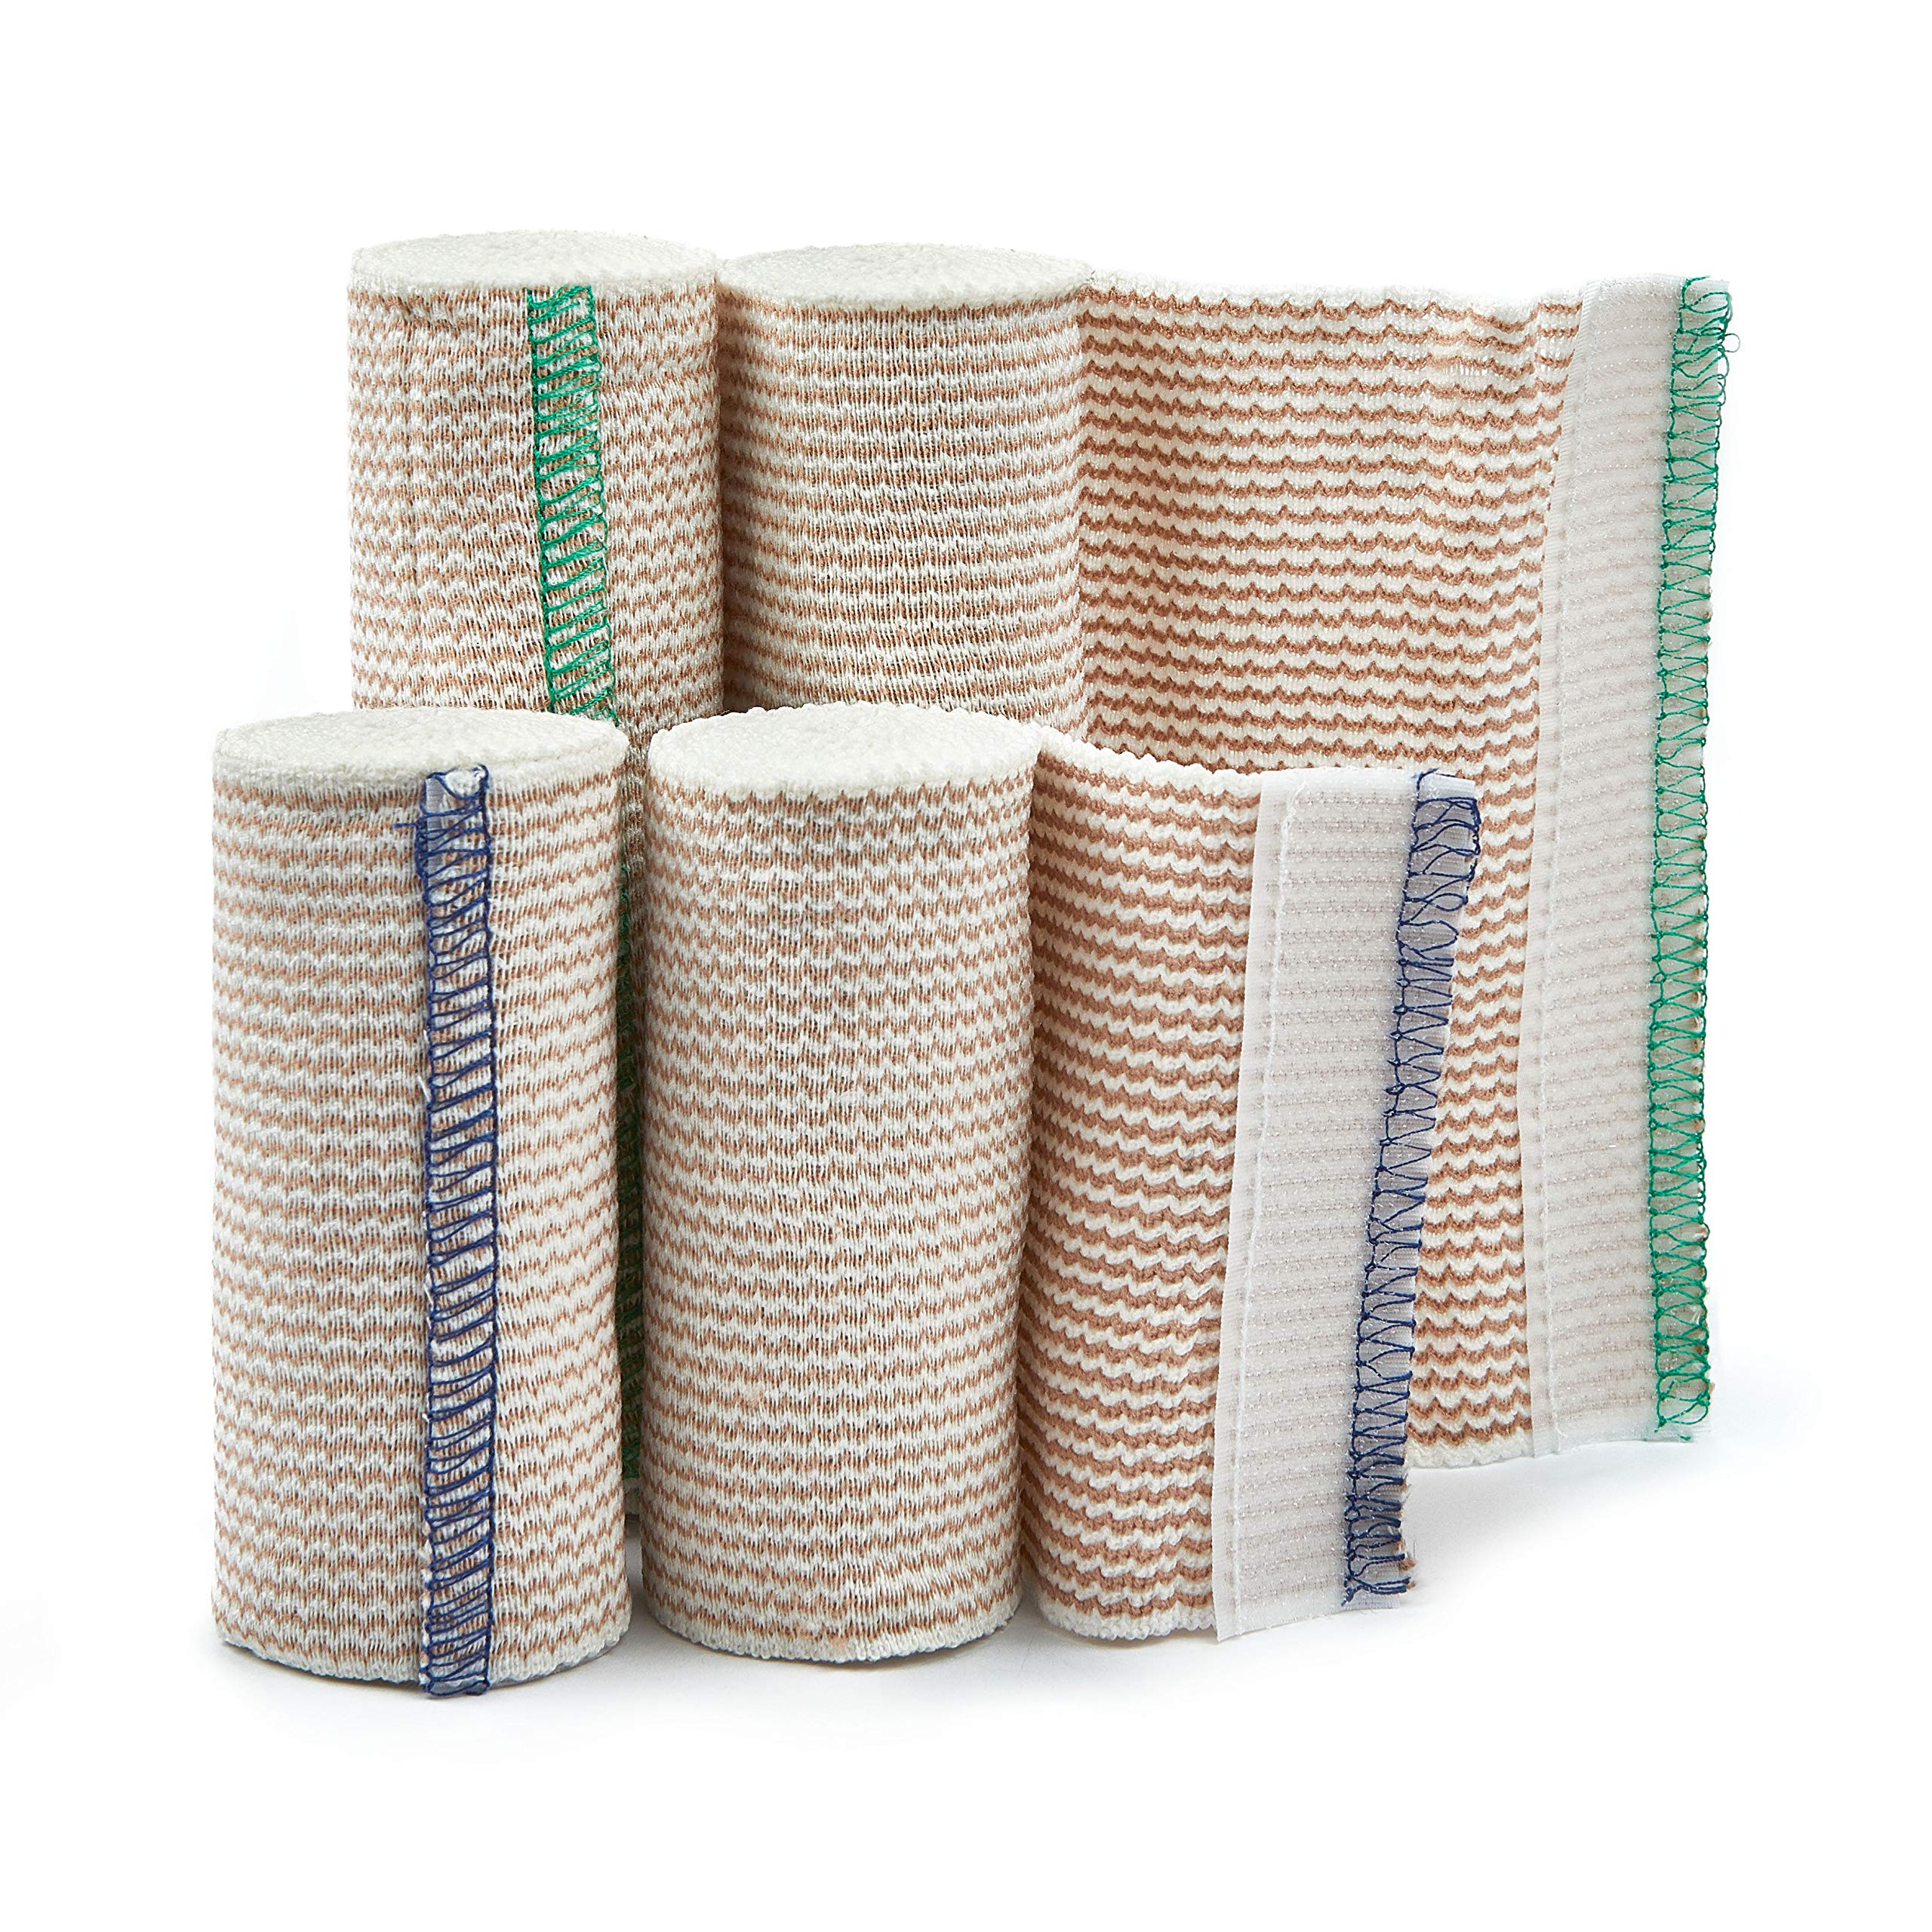 Premium Elastic Bandage Wrap Compression Roll with Velcro Includes Hook and Loop Closure, Set of 4 Pack FDA Approved, Two Rolls of Each Size 4 Inch x 4.6 Meter & 6 Inch x 4.6 Metre Polyester Cotton.